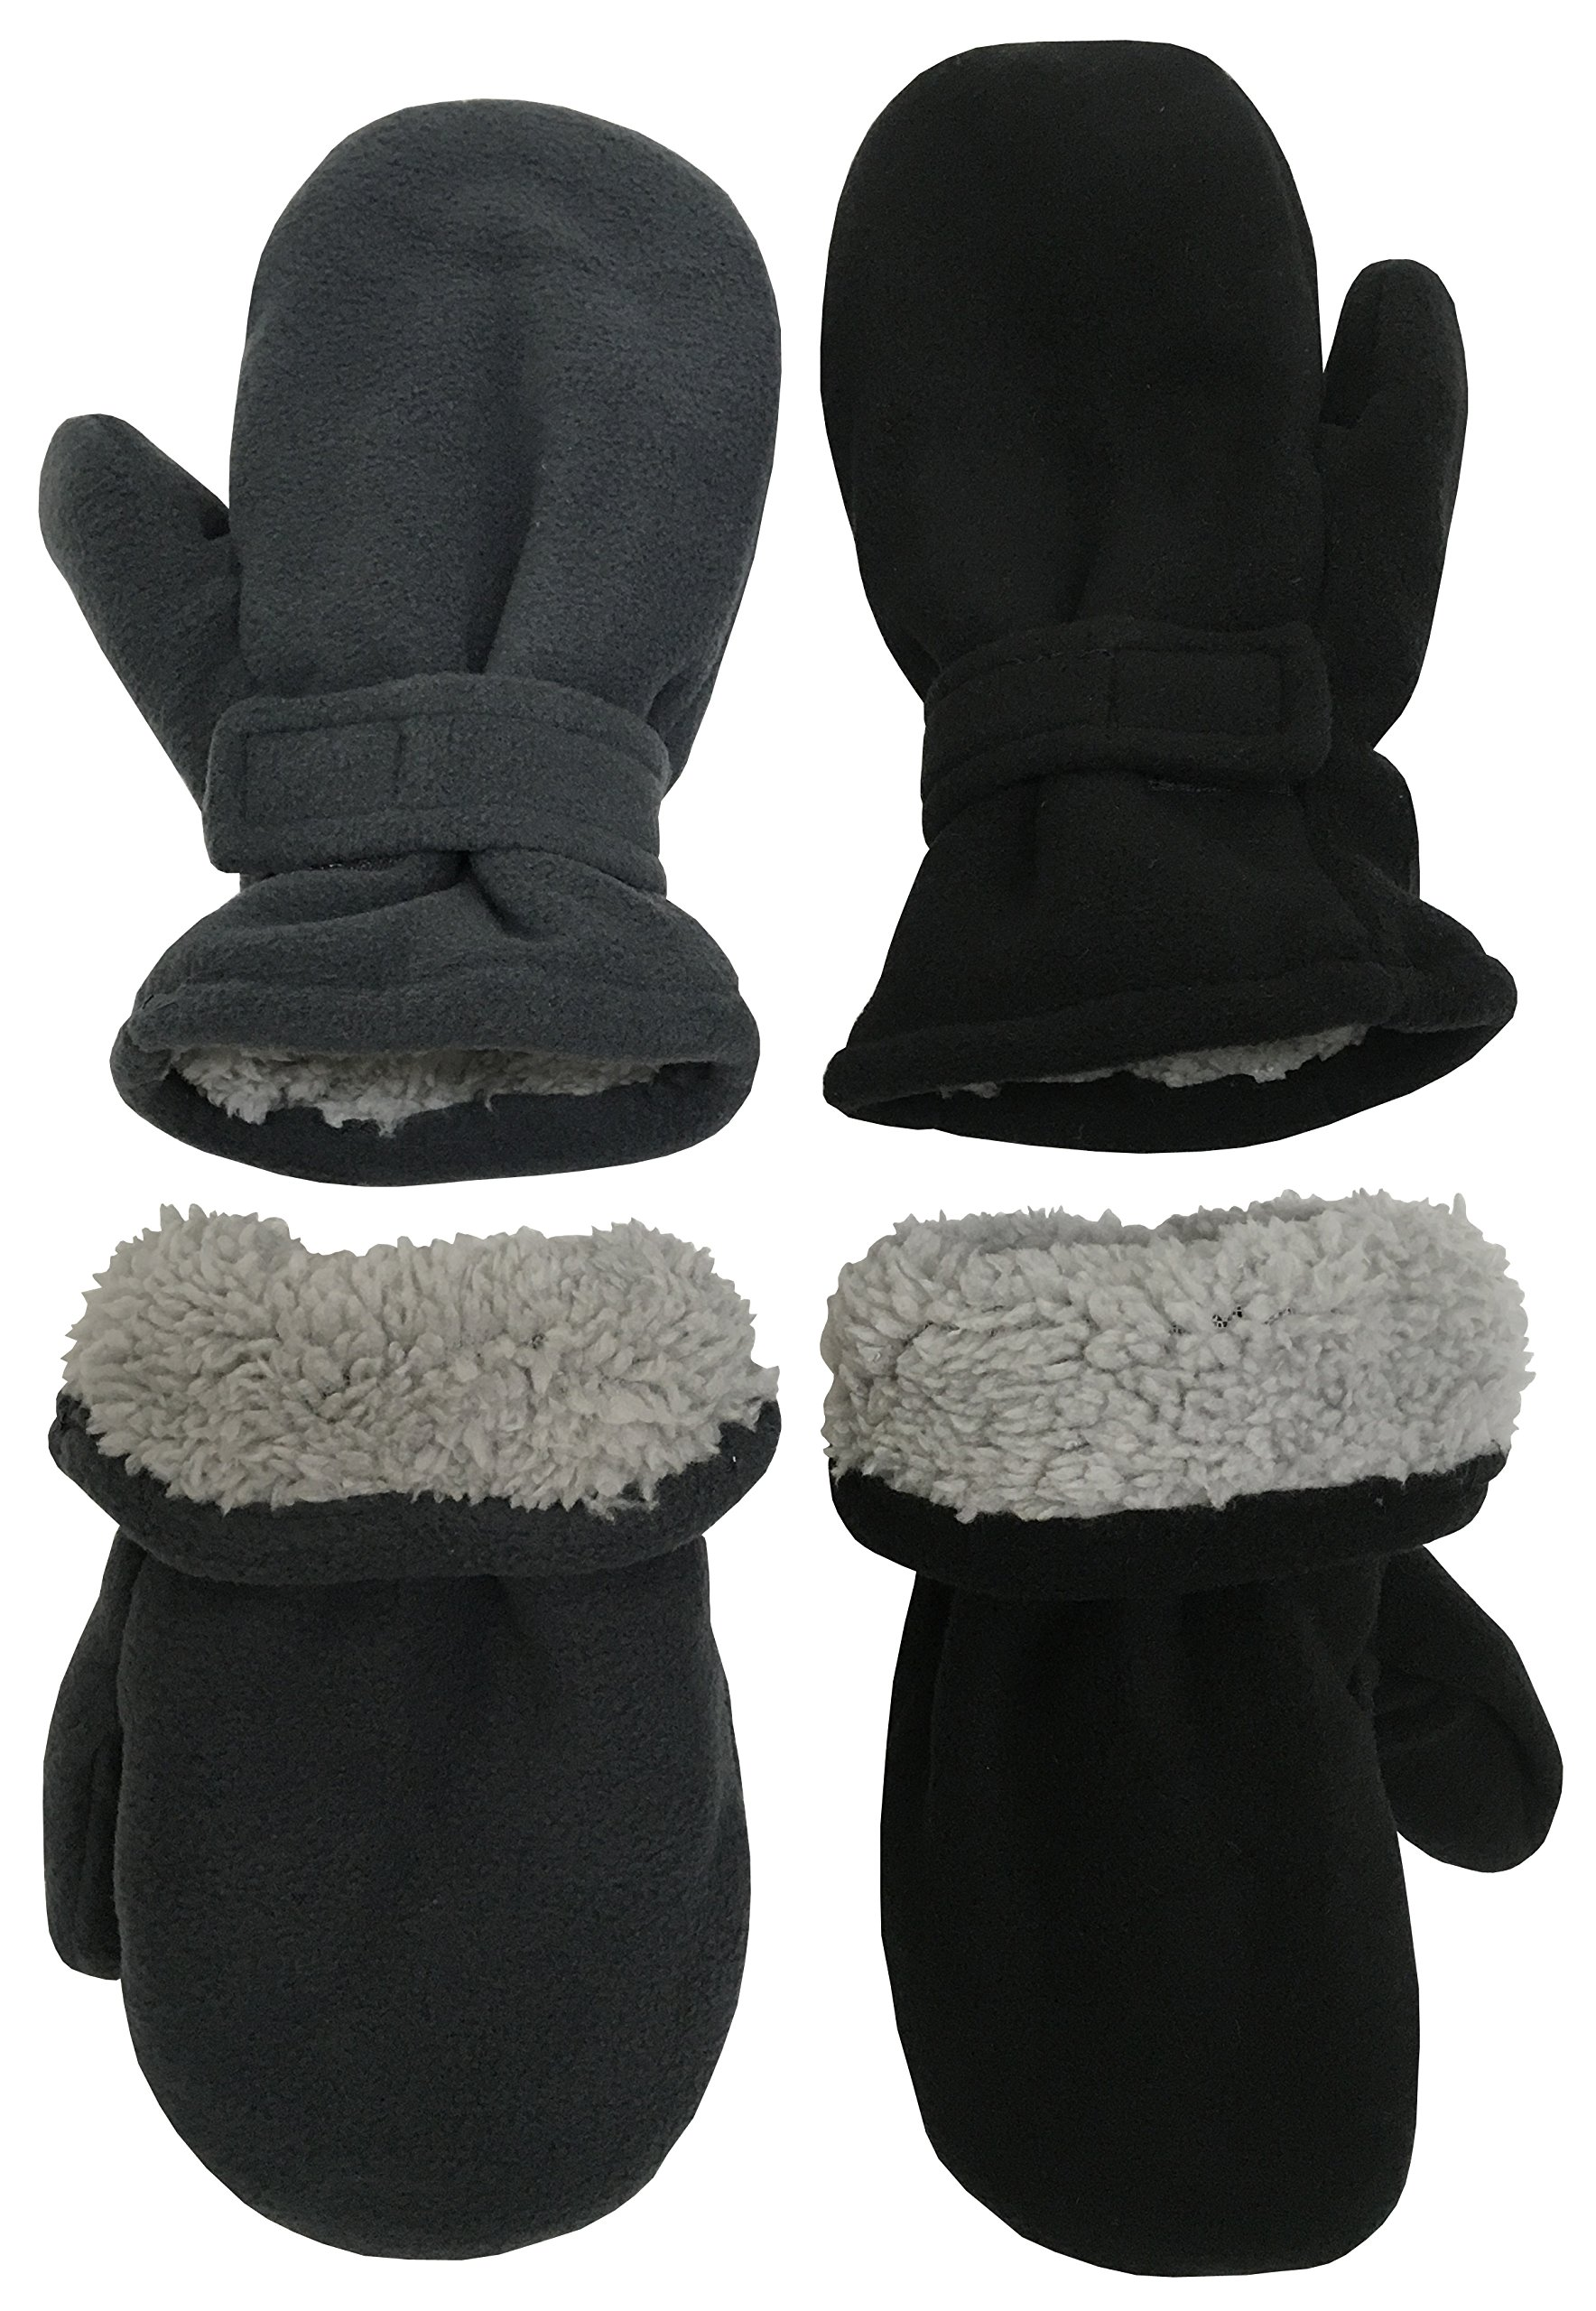 N'Ice Caps Little Kids and Baby Easy-On Sherpa Lined Fleece Mittens - 2 Pair Pack (Black/Charcoal Pack, 2-3 Years)